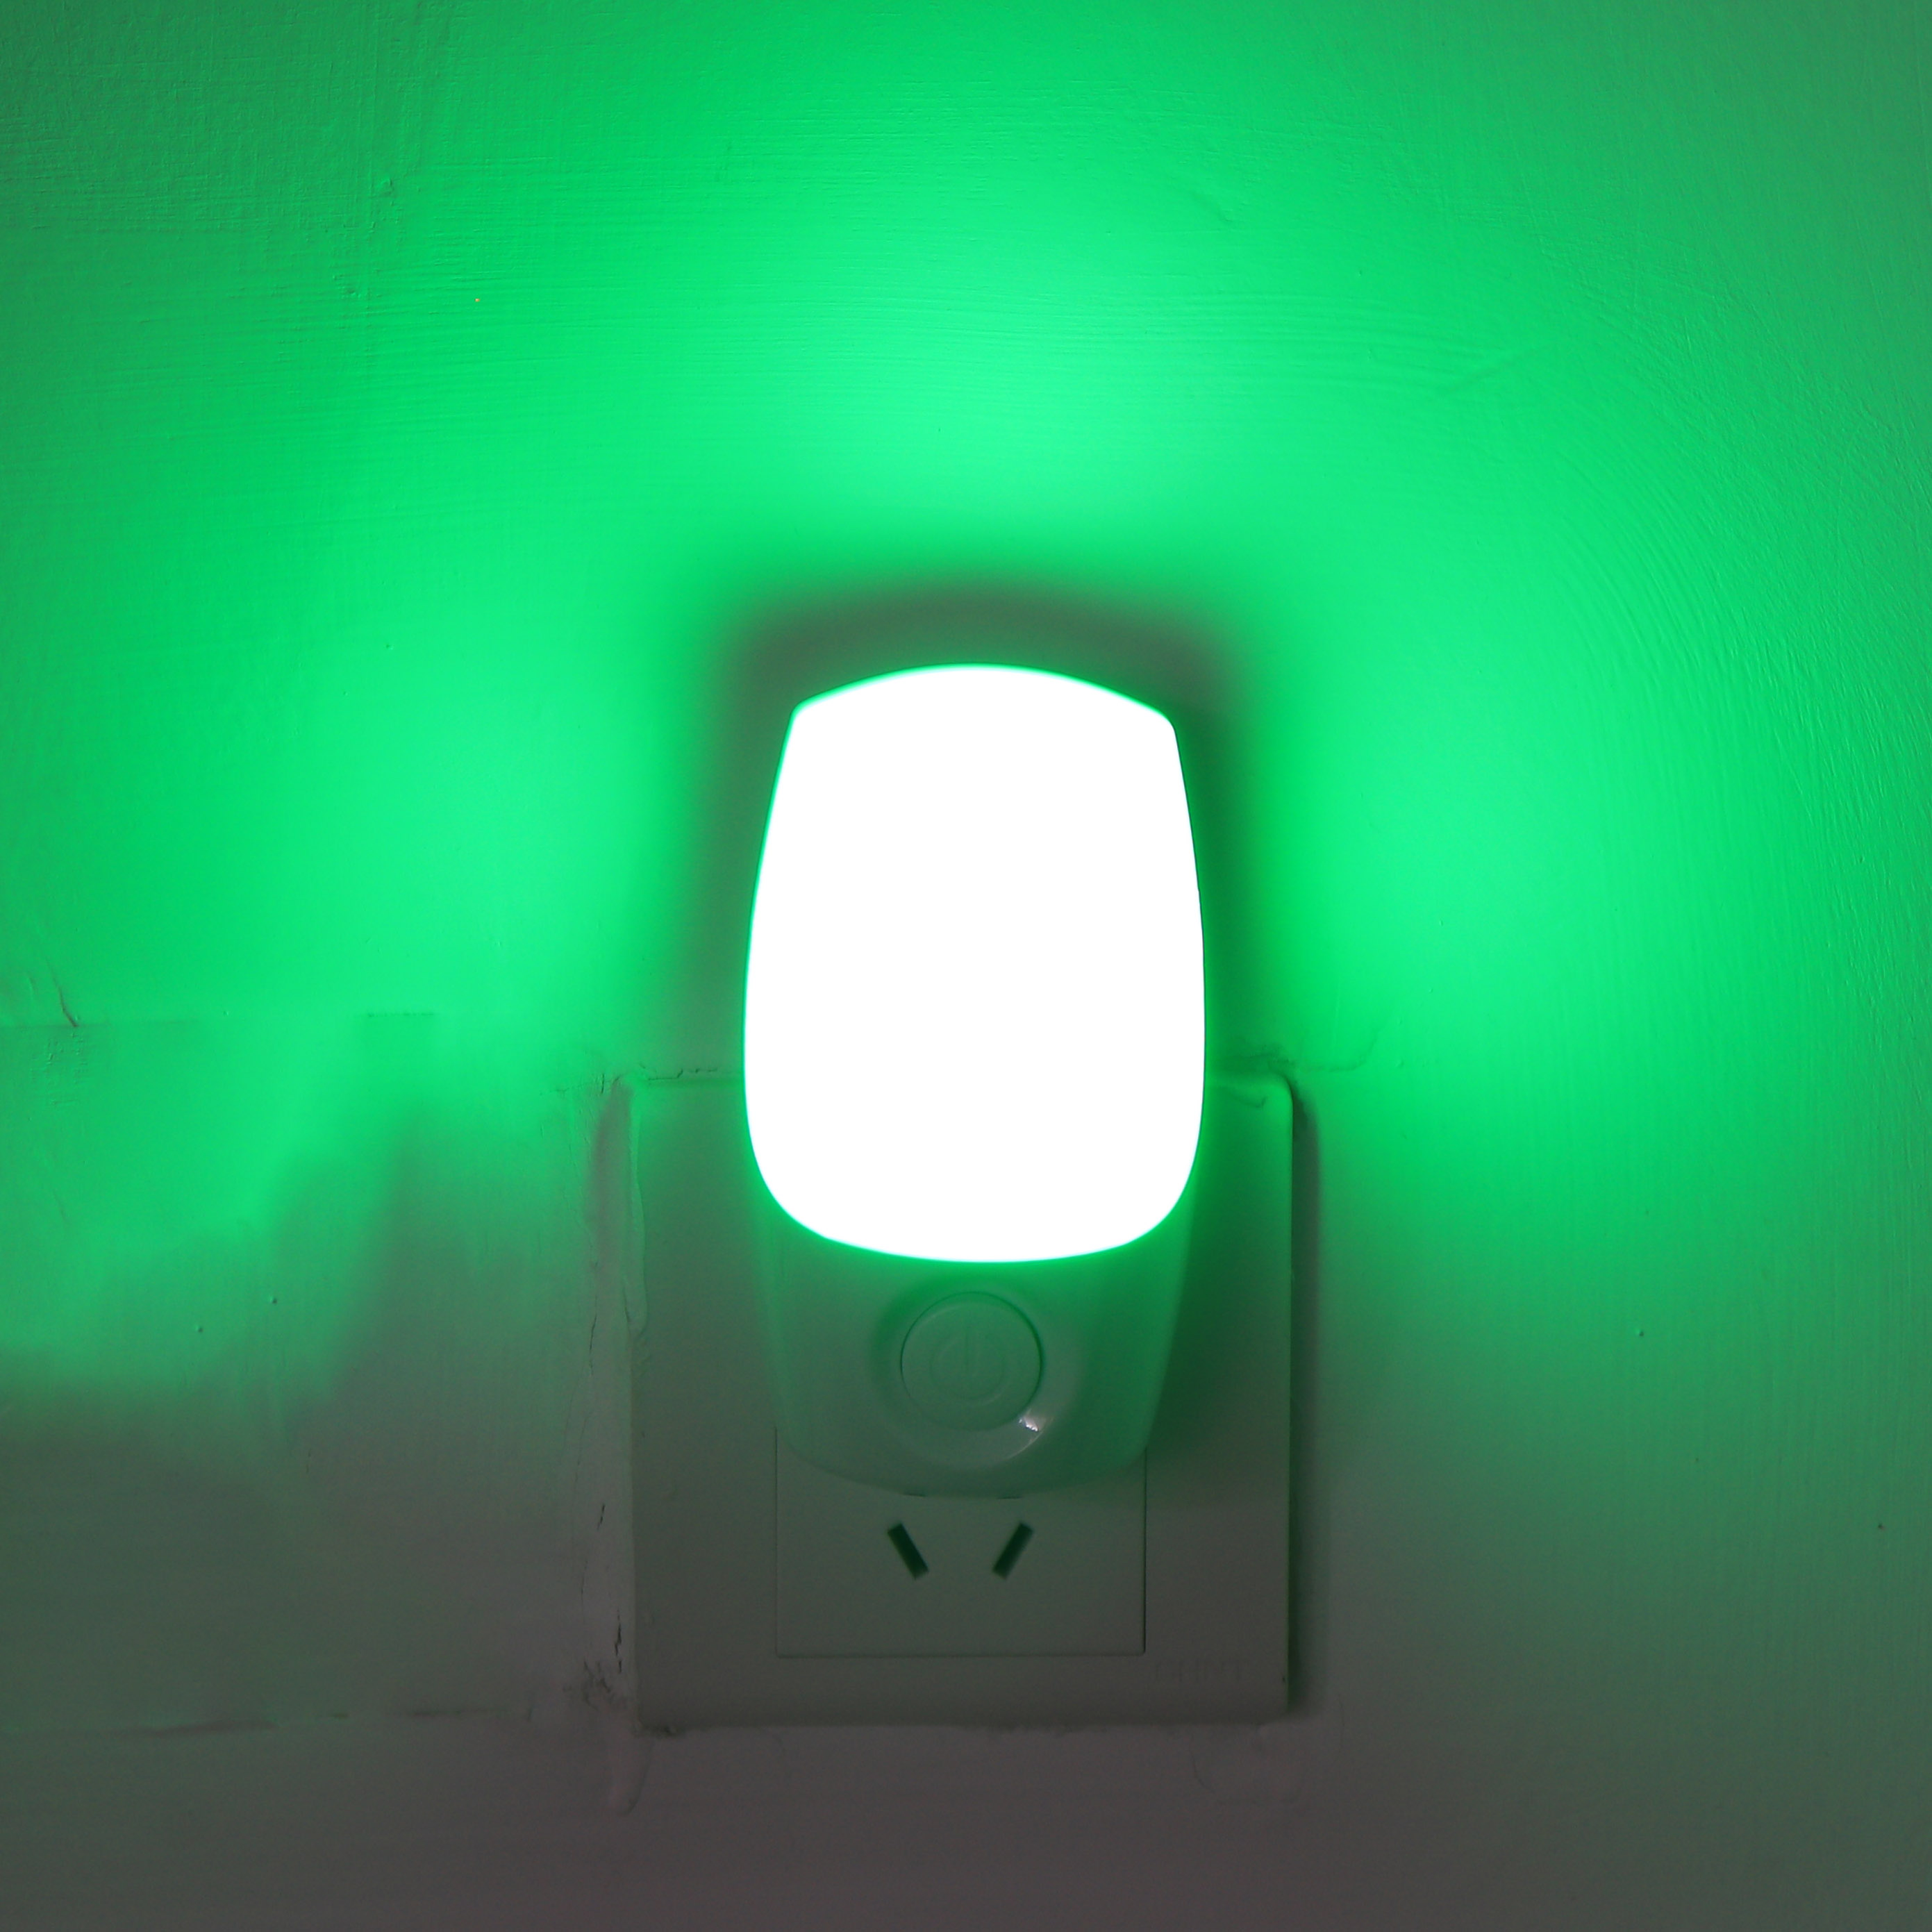 Atmosphere USA Plug RGB Auto sensor toilet LED night light color changing for toilet